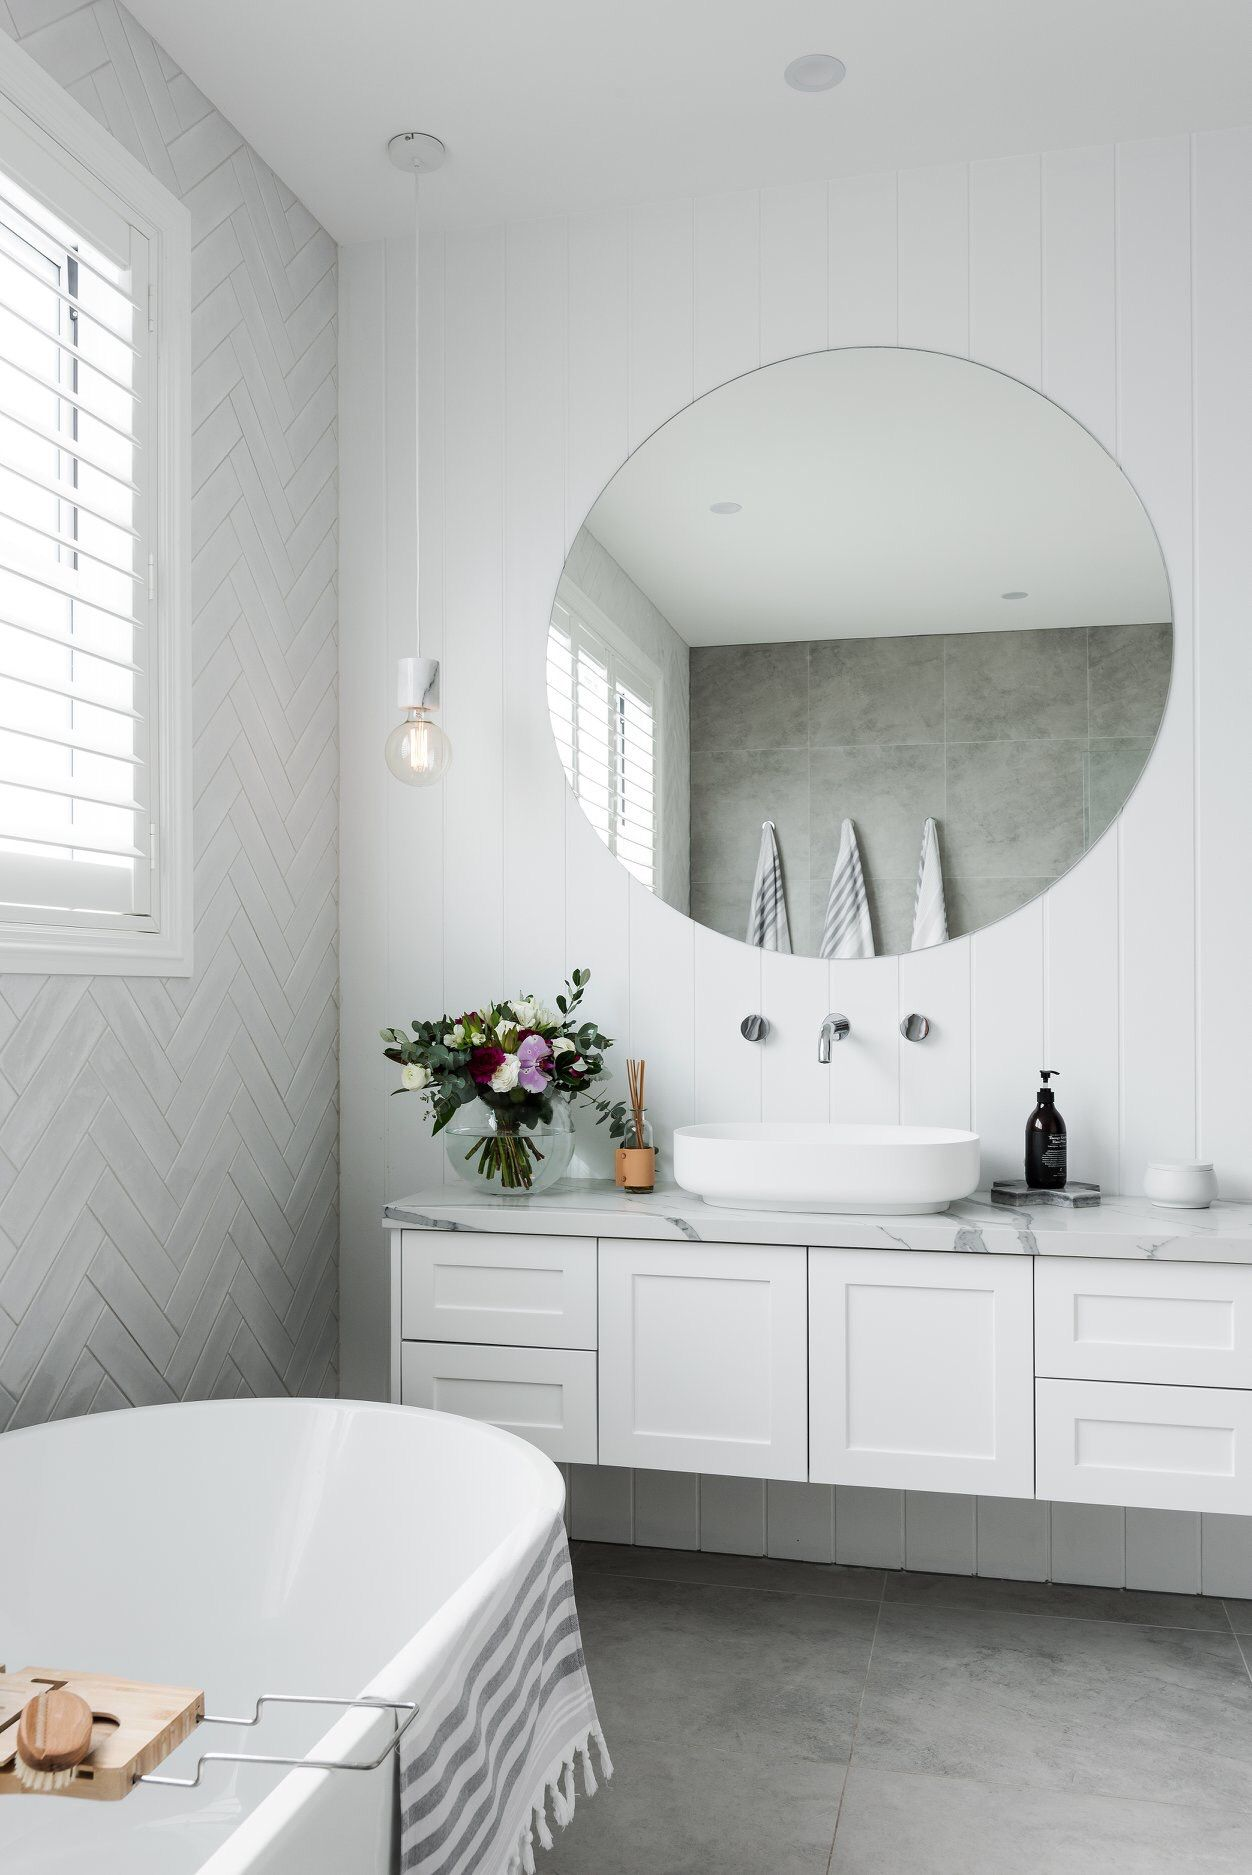 Sasha Chris Badkamer Herringbone Tile Feature White Tiles Subway Tiles Soft